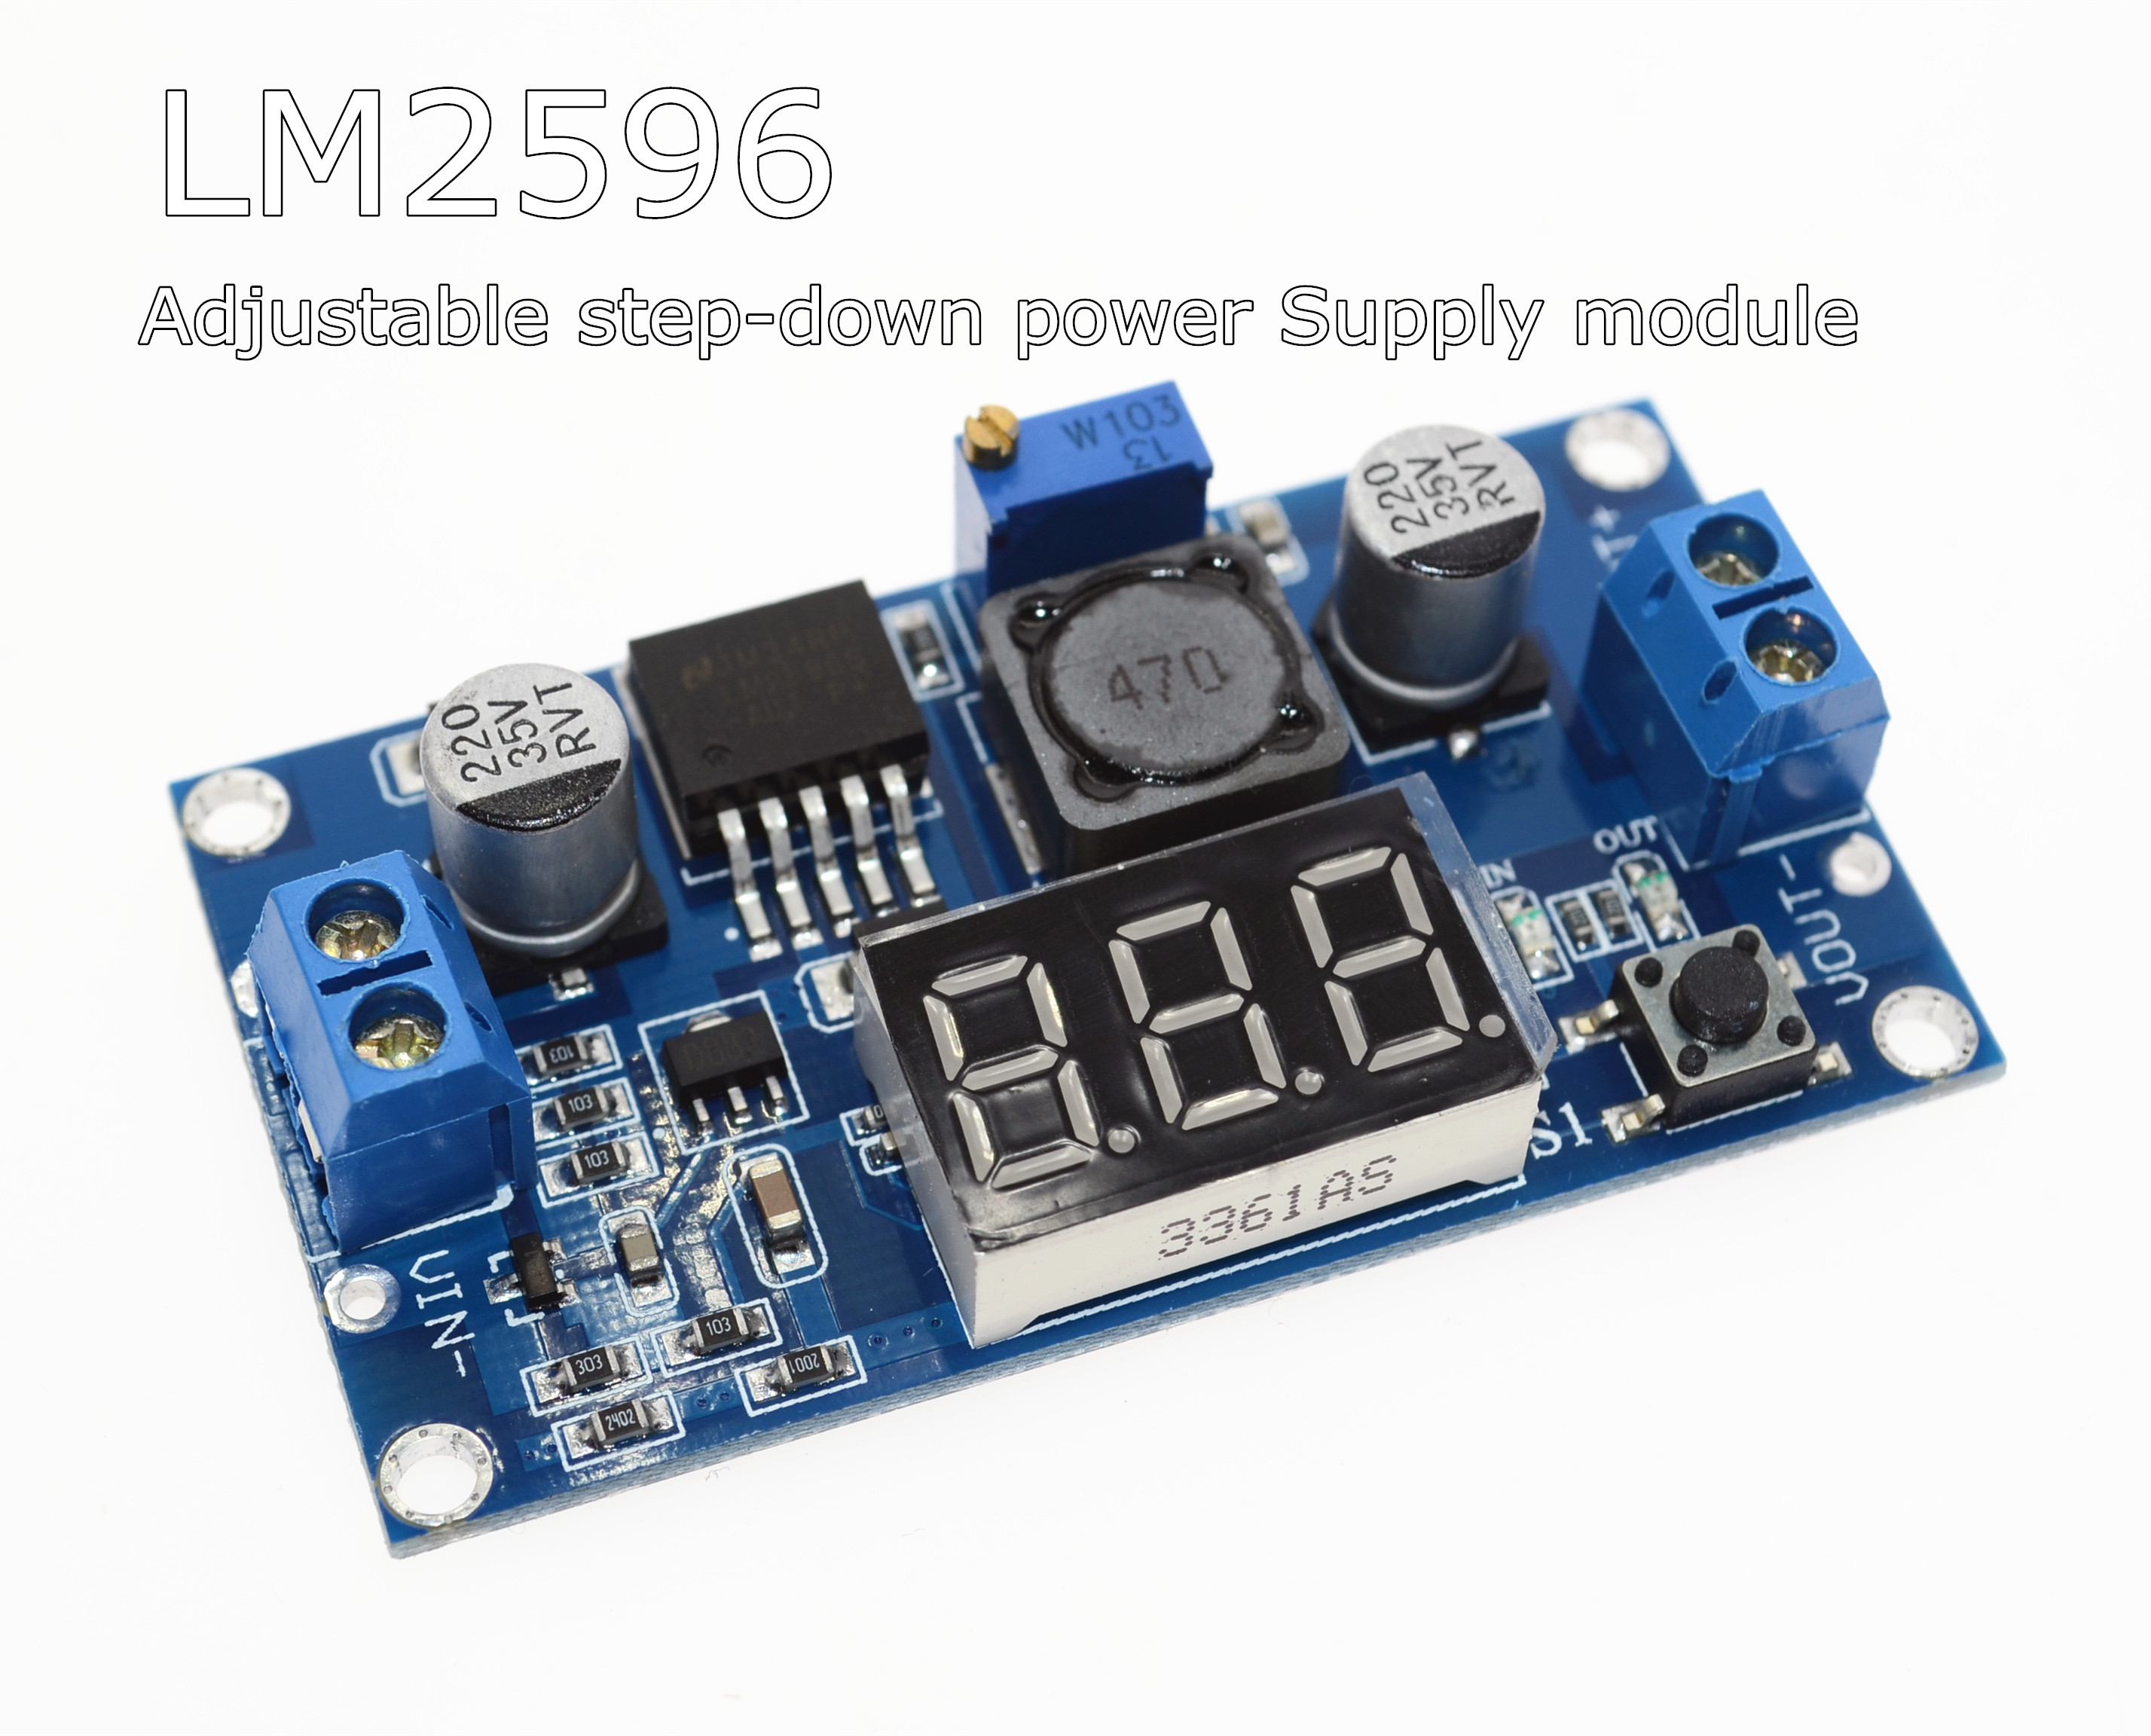 Shenzhen CAIZHIXING  Electronic Co., Ltd.   LM2596 LM2596S power module + LED Voltmeter DC-DC adjustable step-down power supply module with digital display